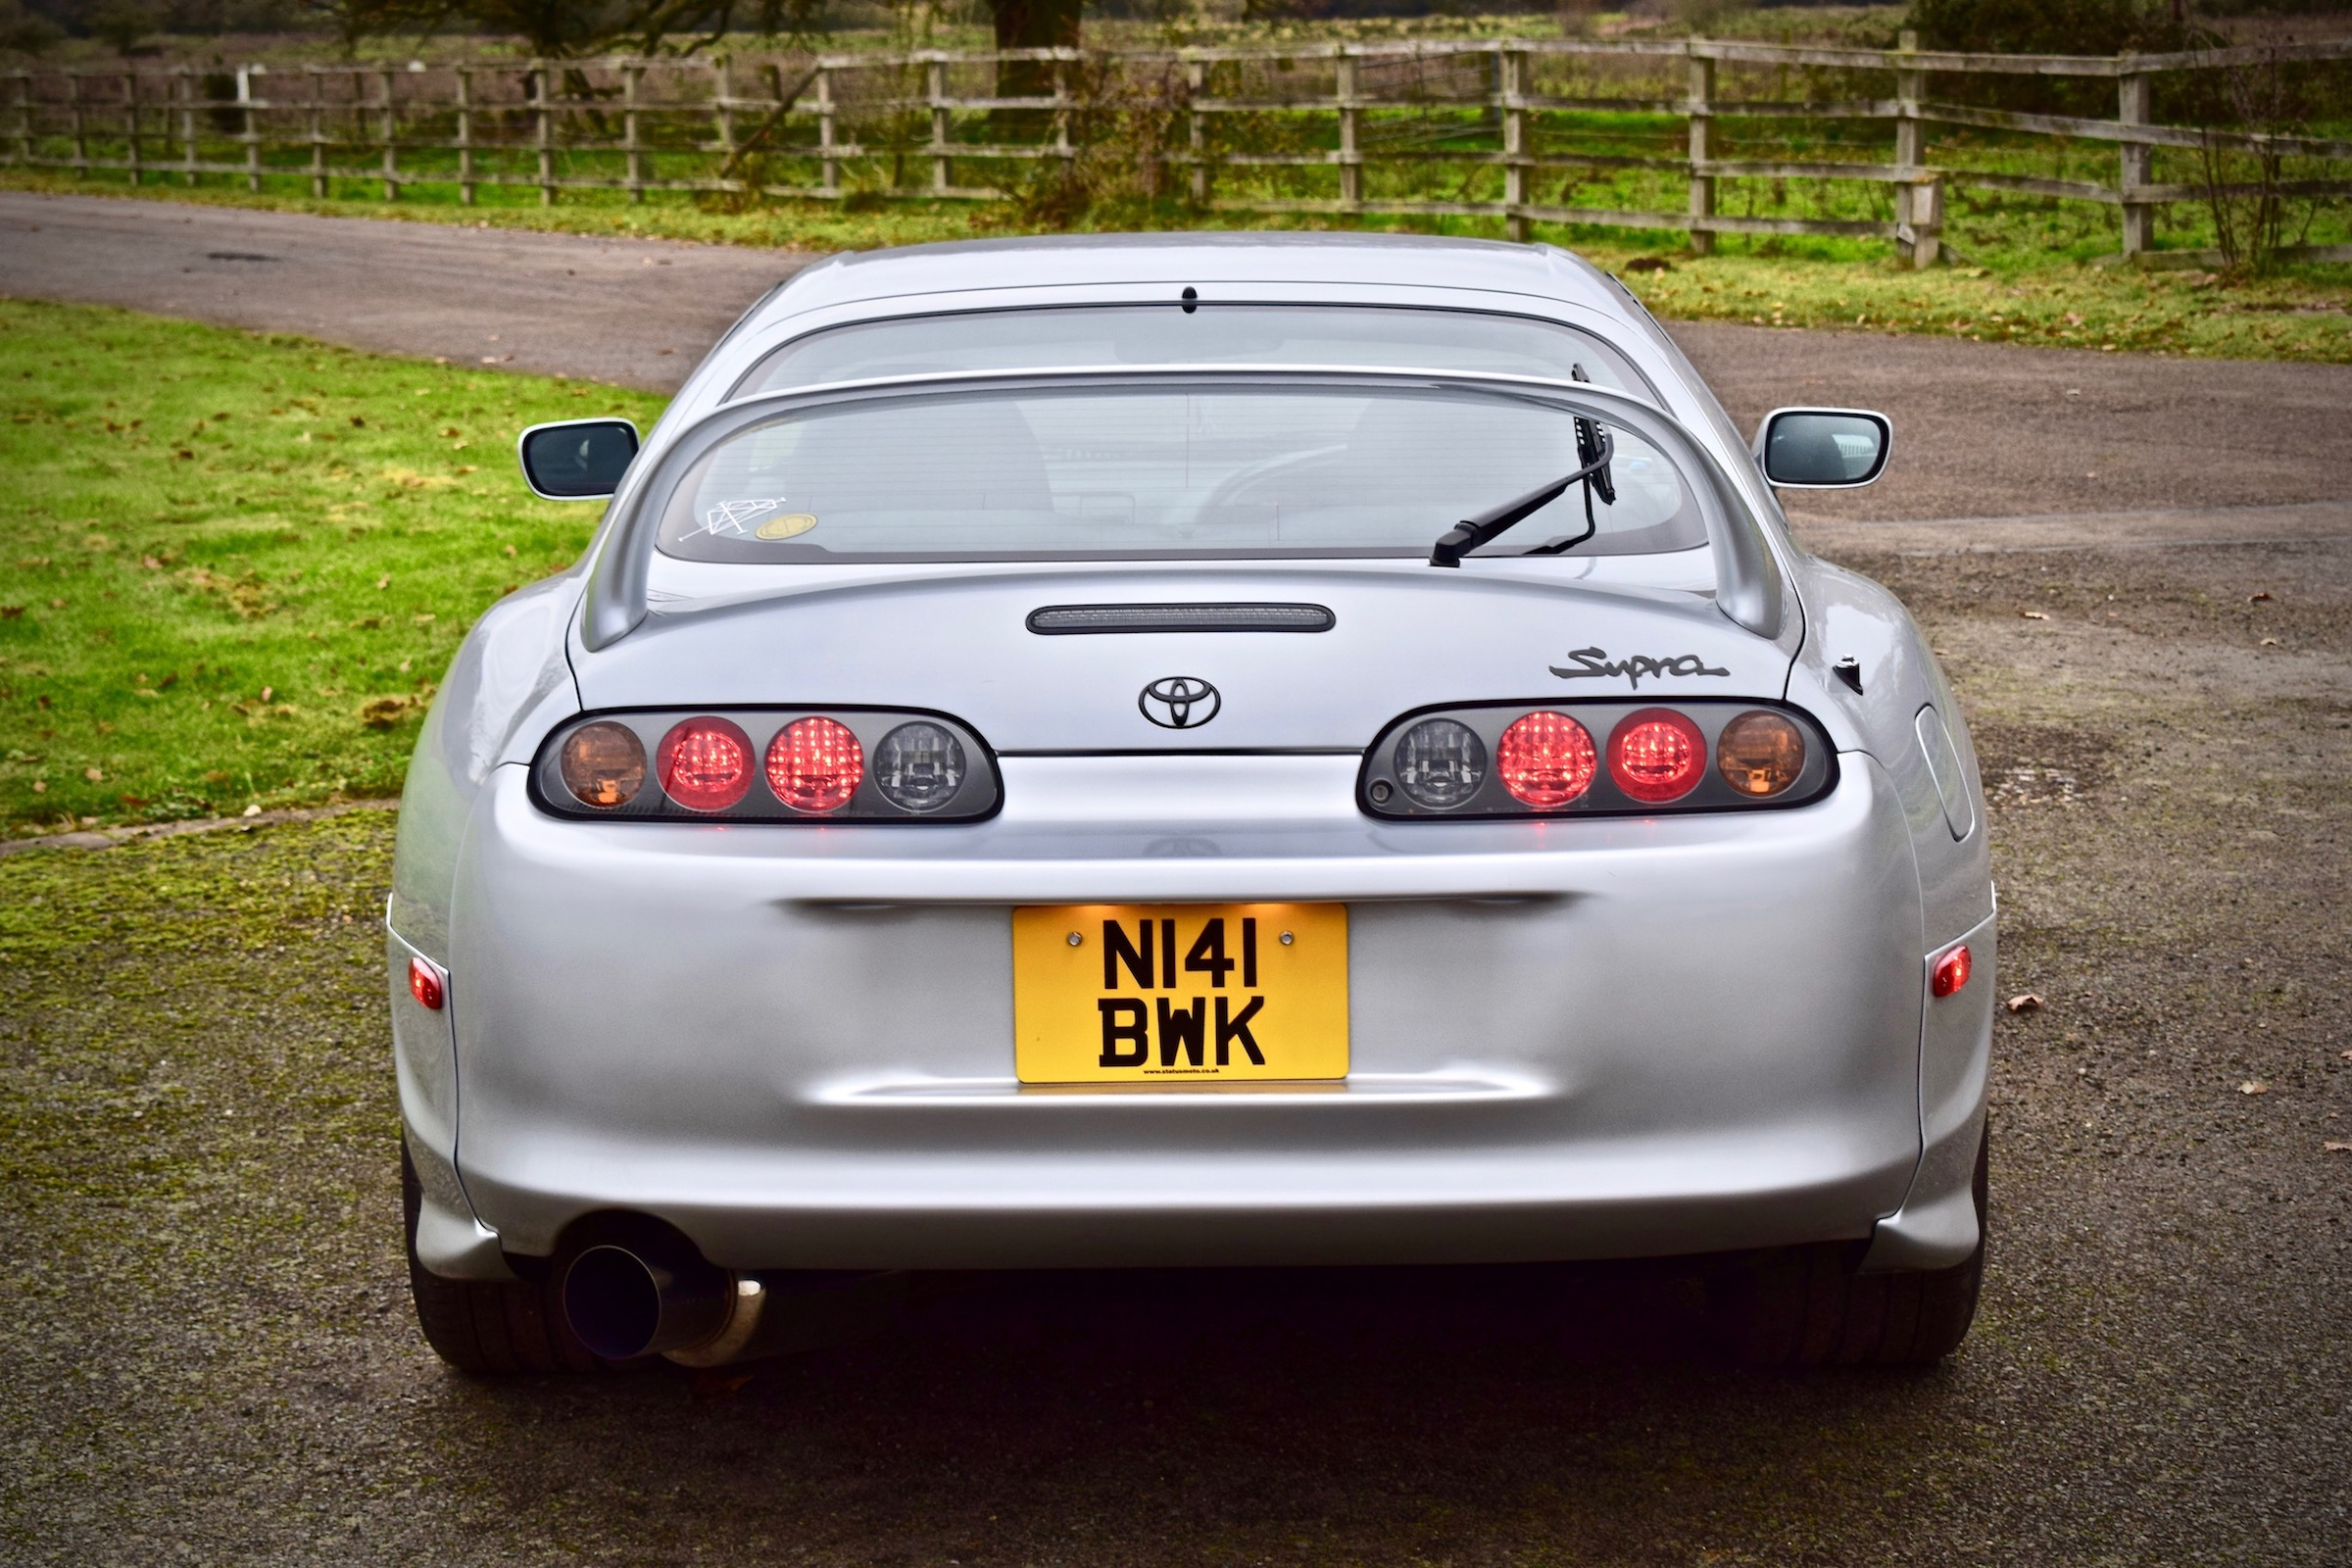 Toyota Supra mark 4 rear